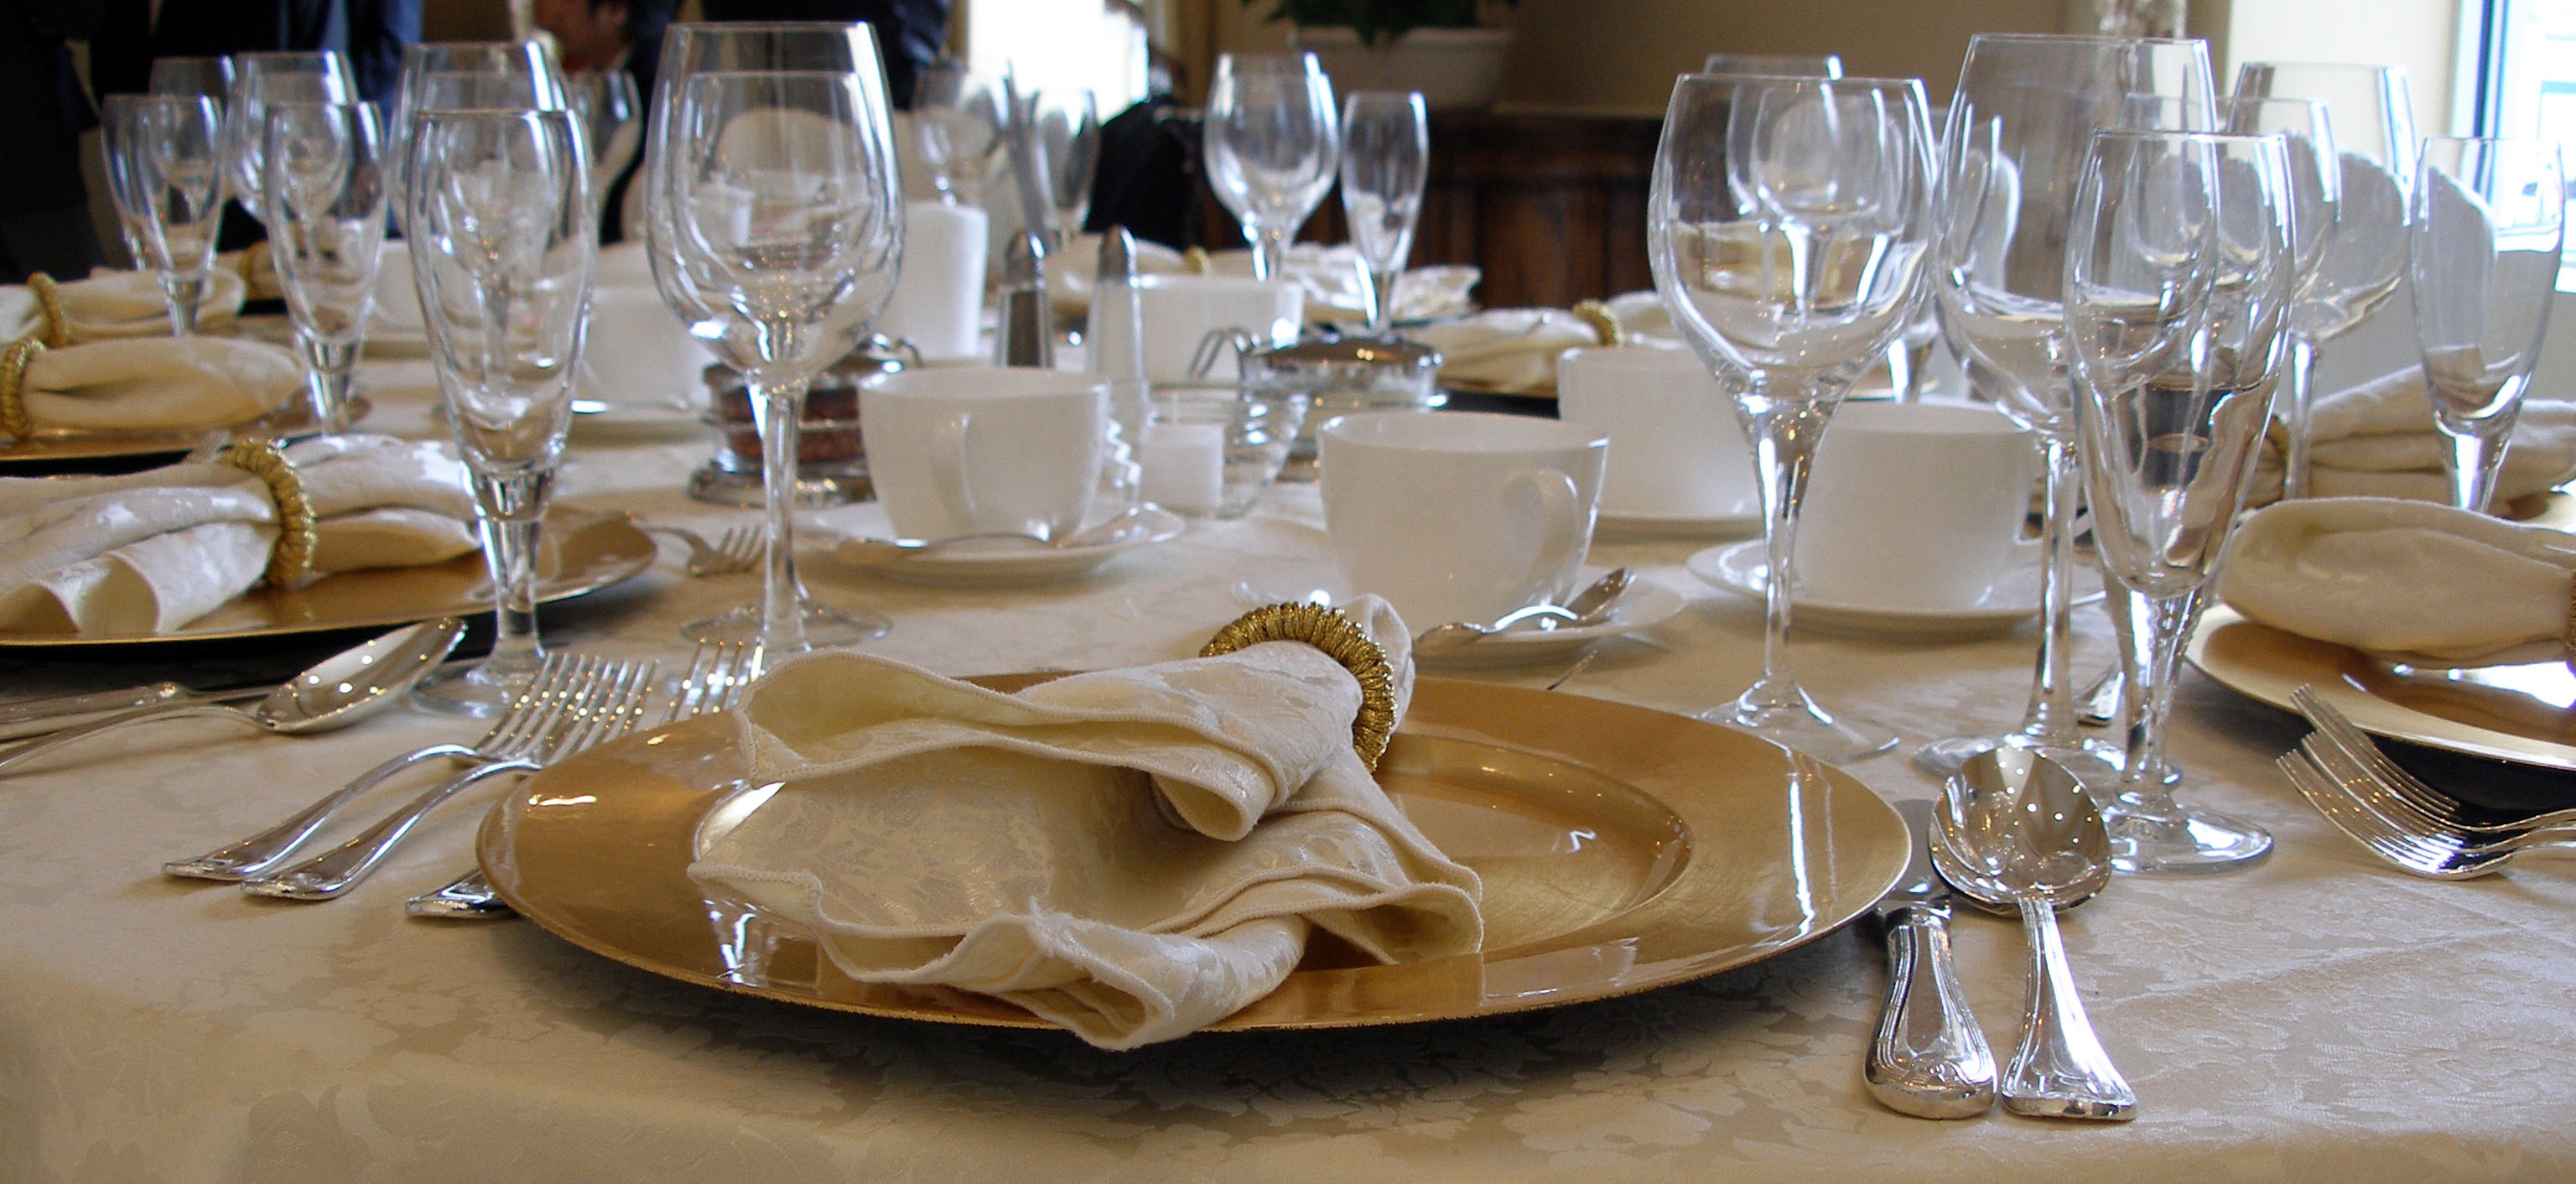 Modern restaurant table setting - Modern Restaurant Table Setting 49